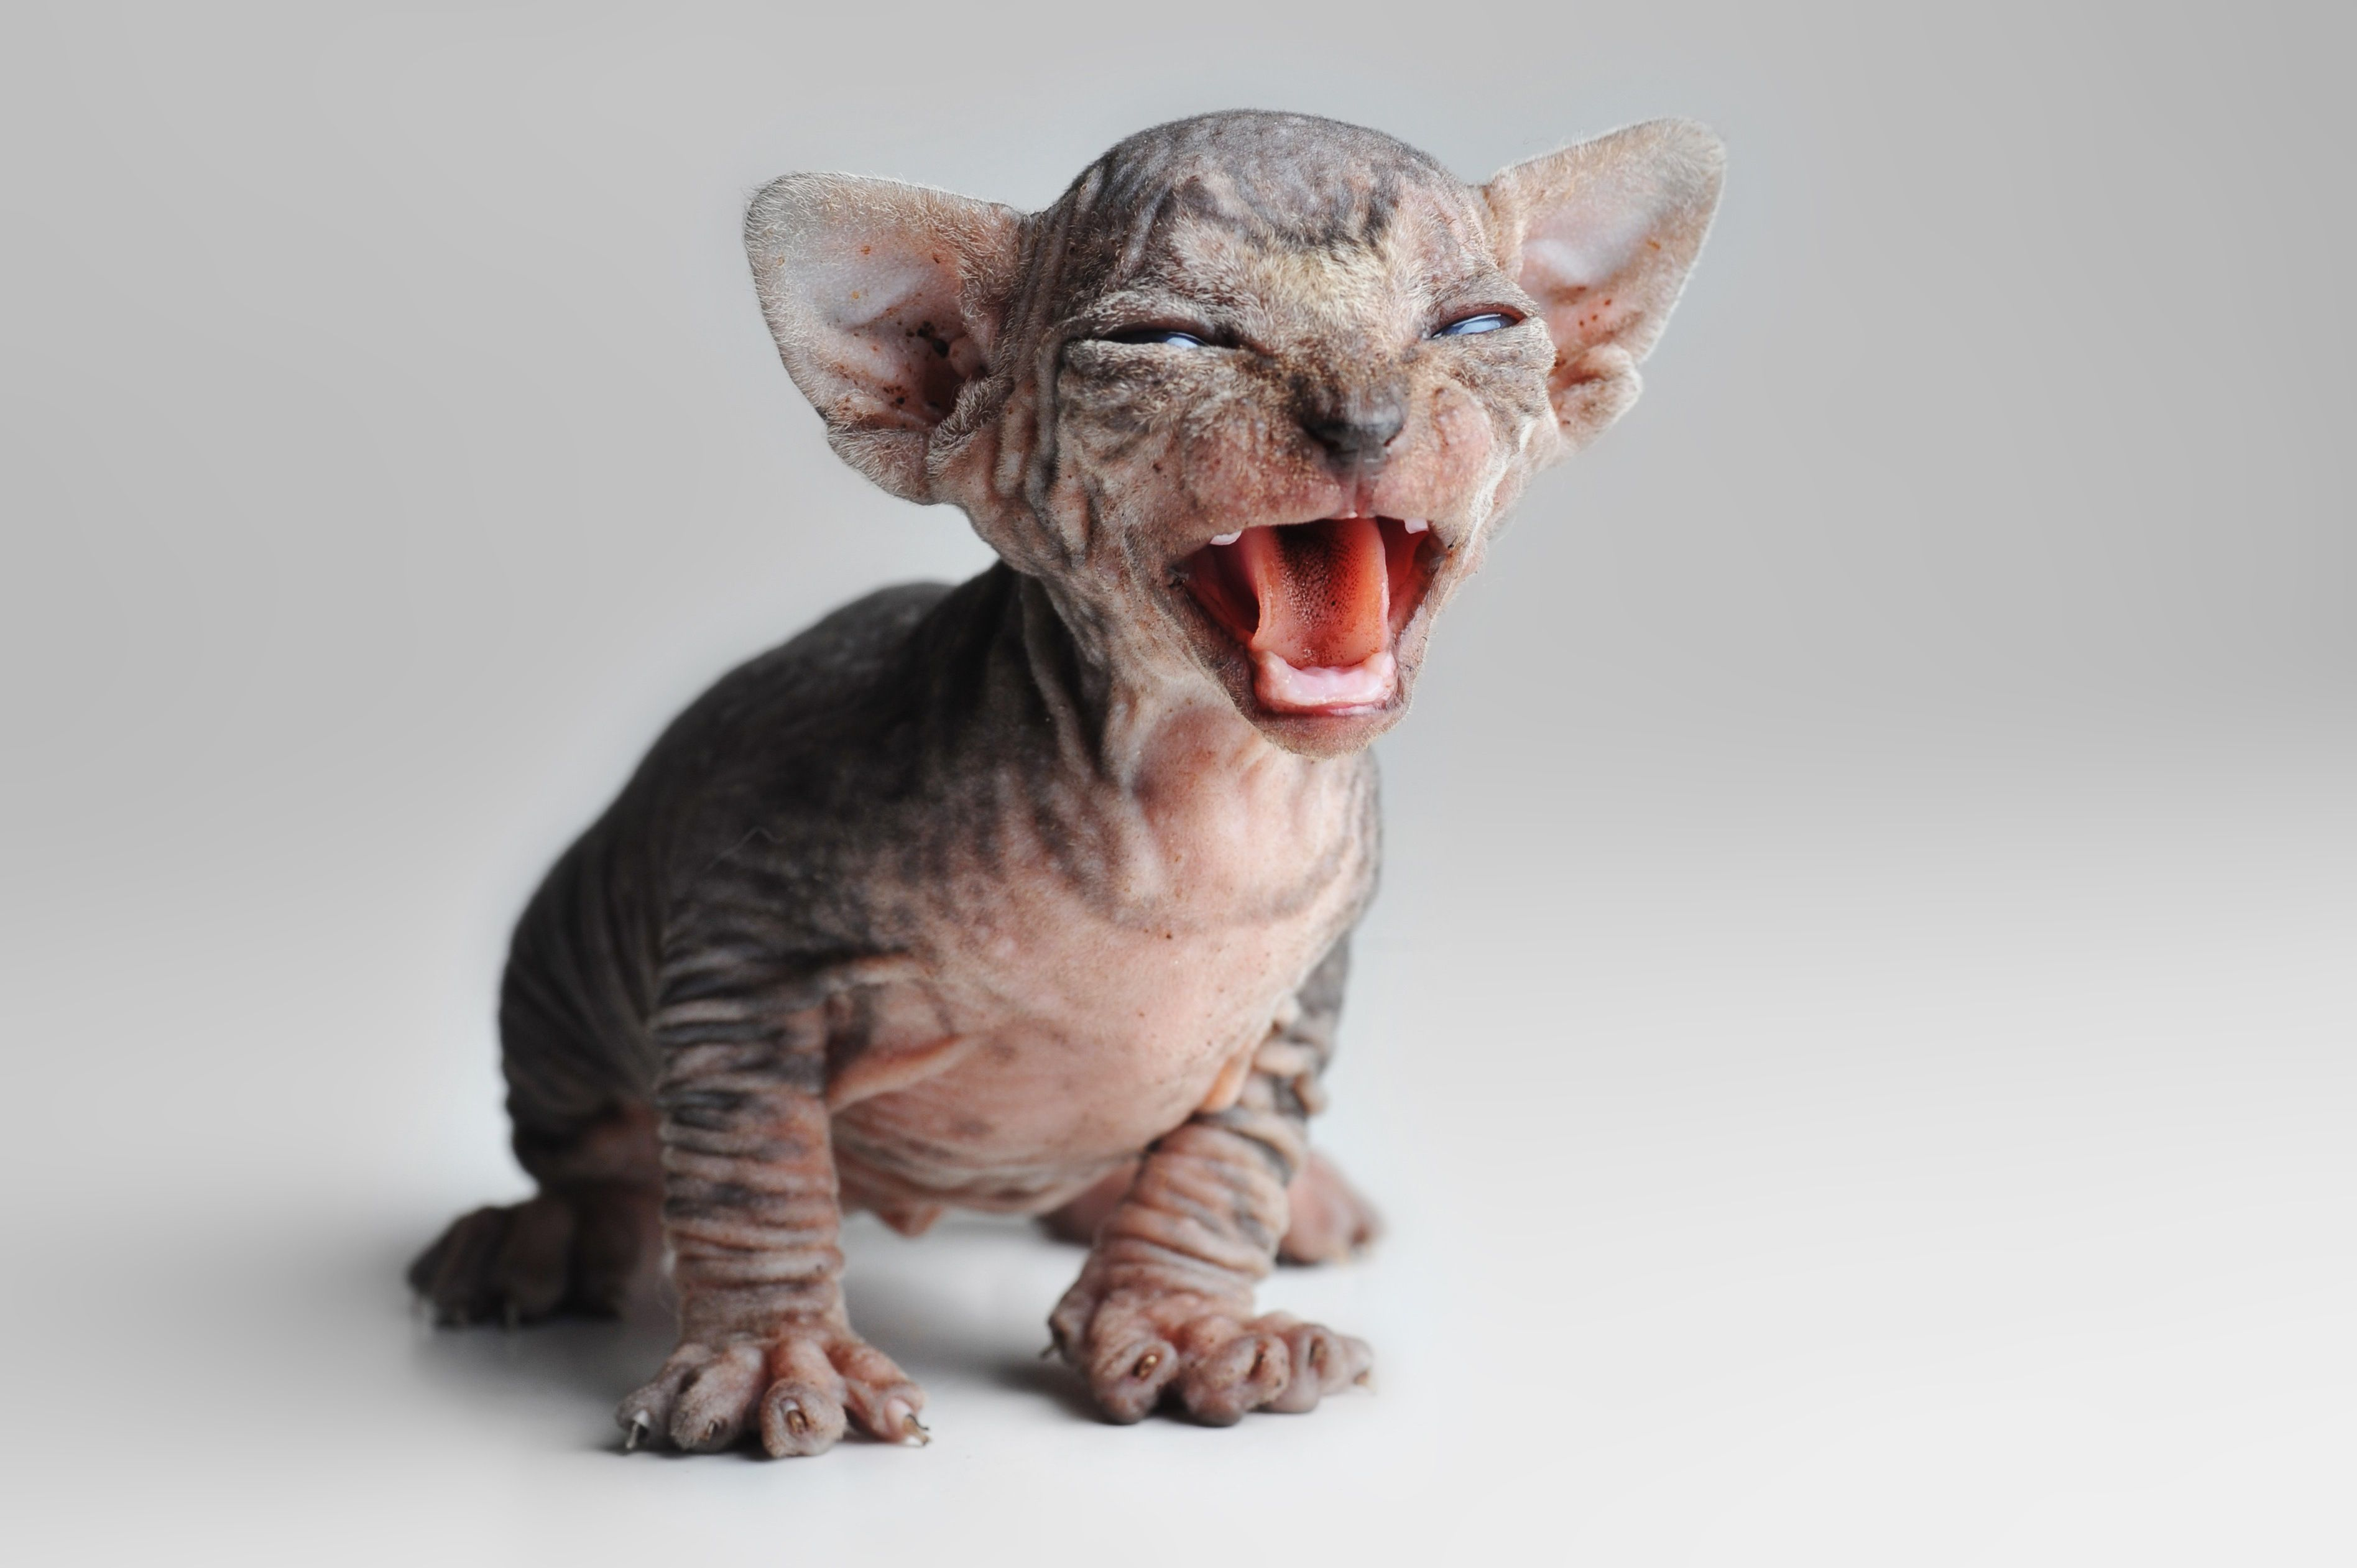 Pin by Amy Shojai, on Kittens Baby cats, Dog shedding, Cats